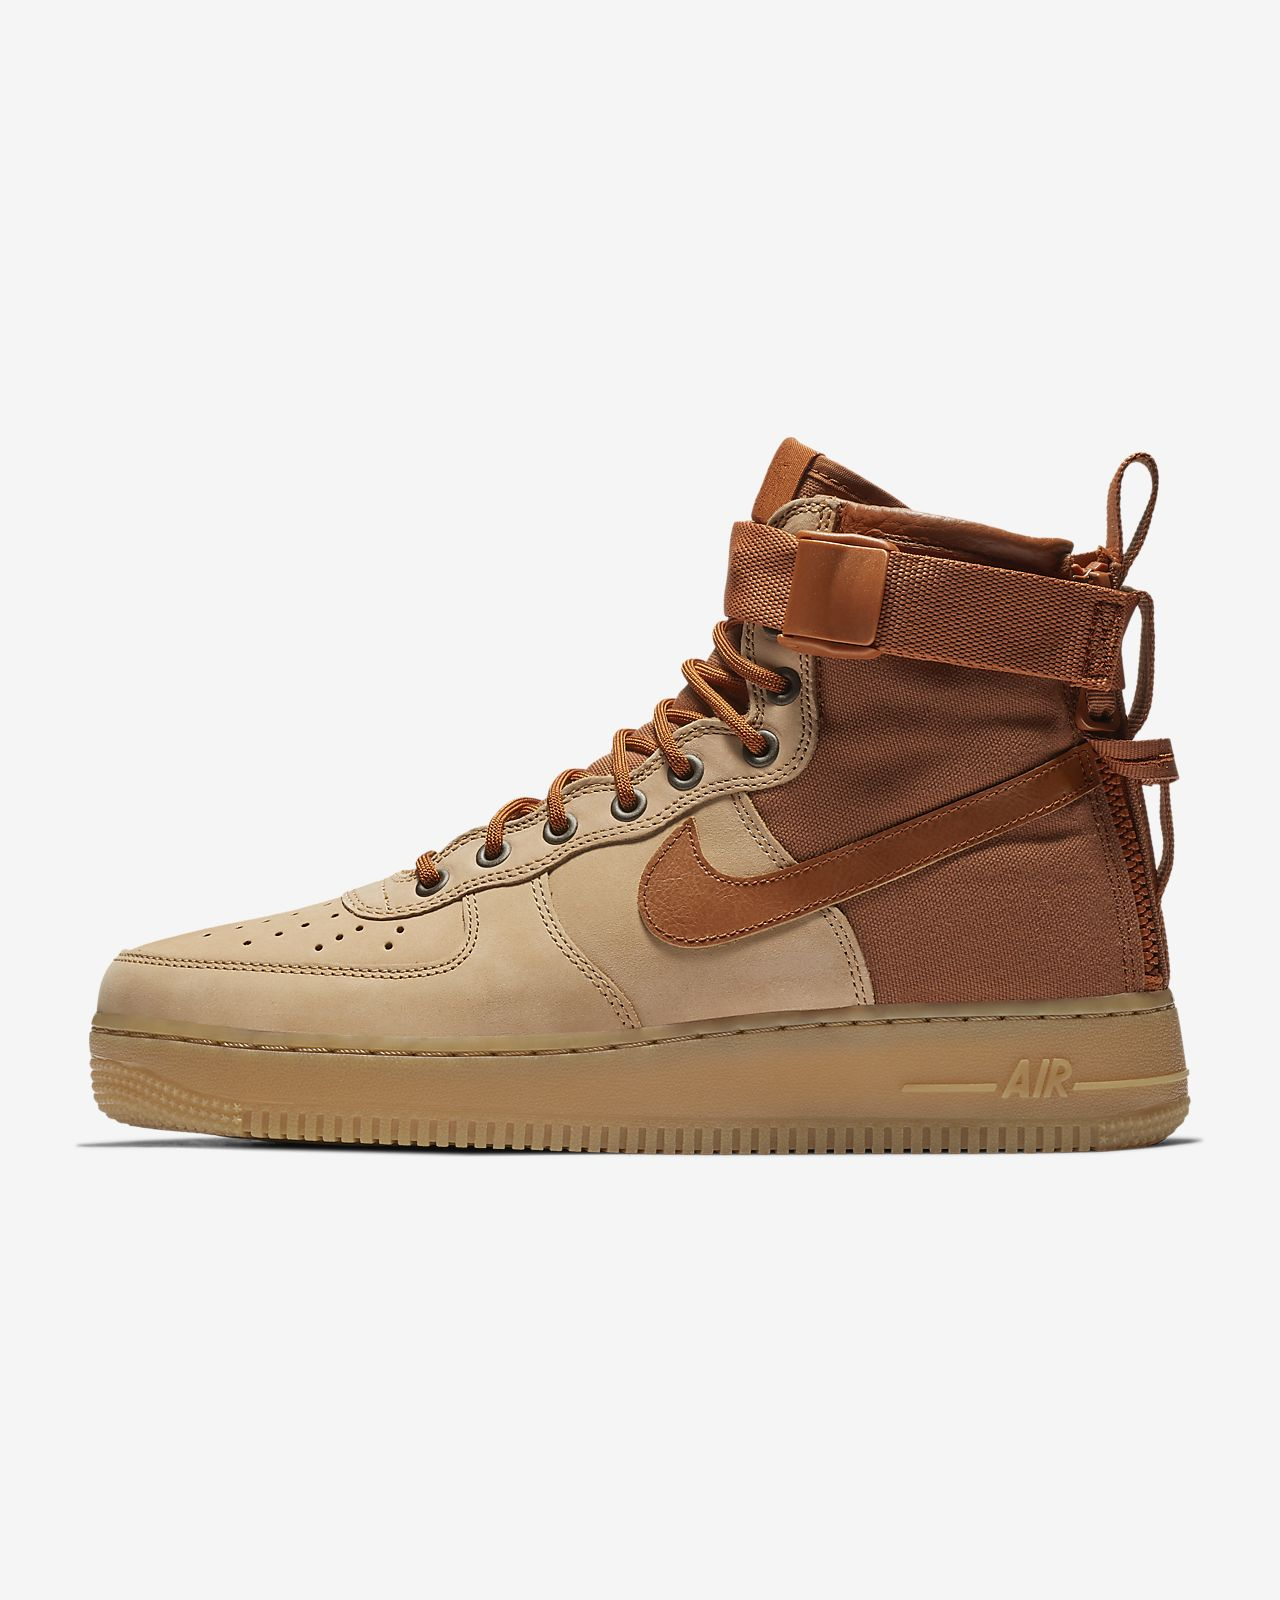 ba0e9f56334c Мужские кроссовки Nike SF Air Force 1 Mid Premium. Nike.com RU